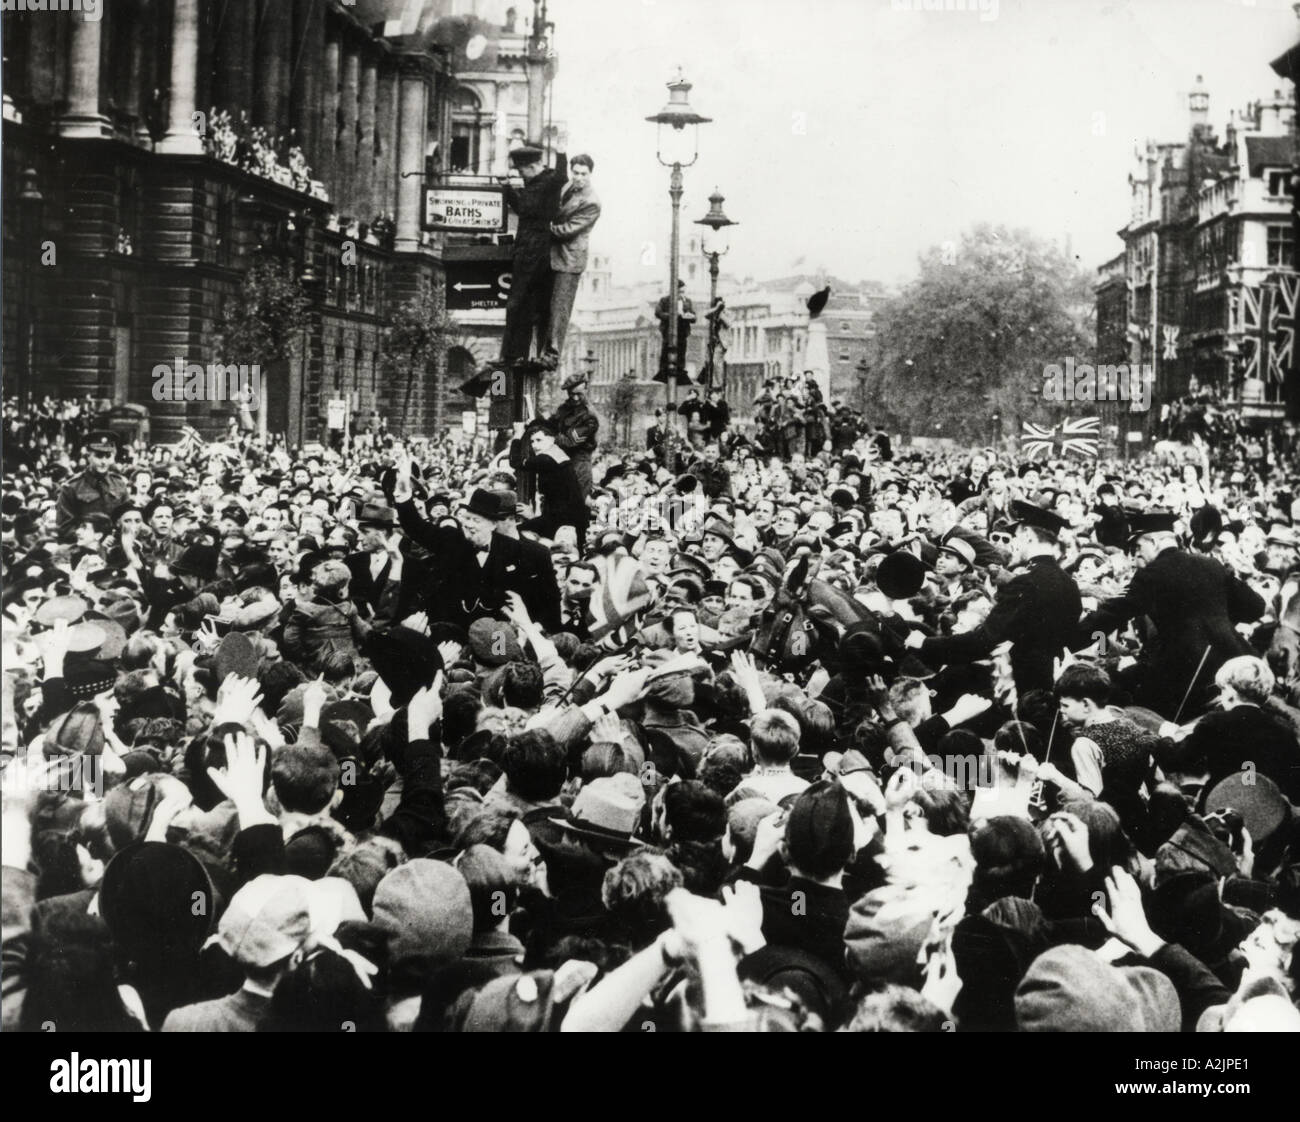 WINSTON CHURCHILL is mobbed by jubilant crowds in Whitehall on VE Day 8 May 1945 - Stock Image